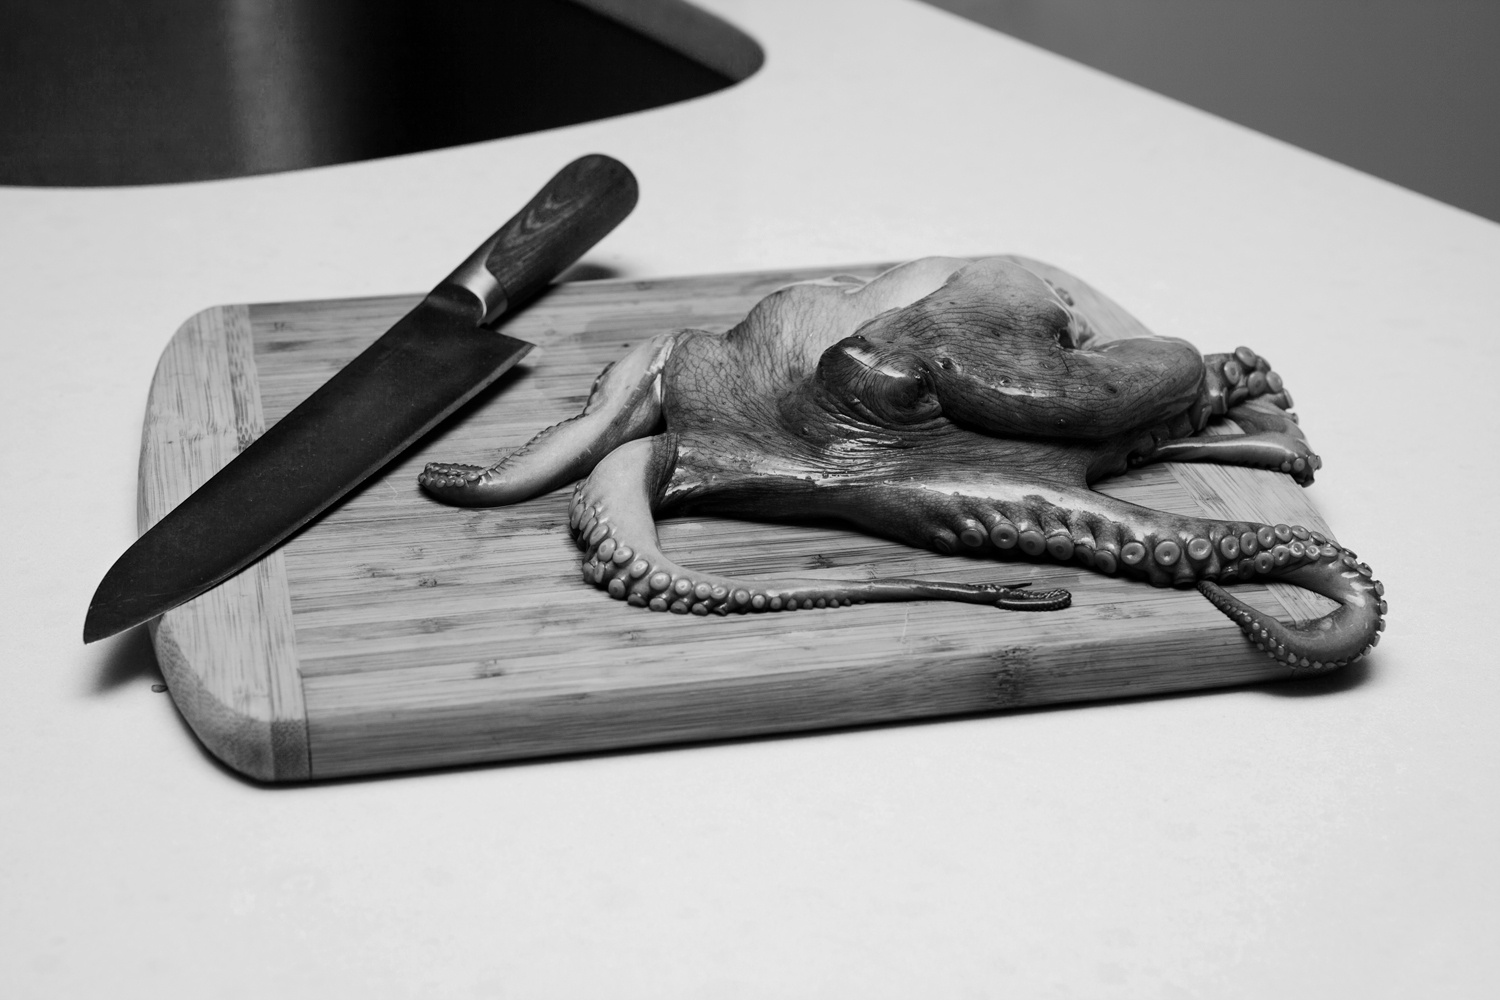 octopus_and_knifebw.jpg